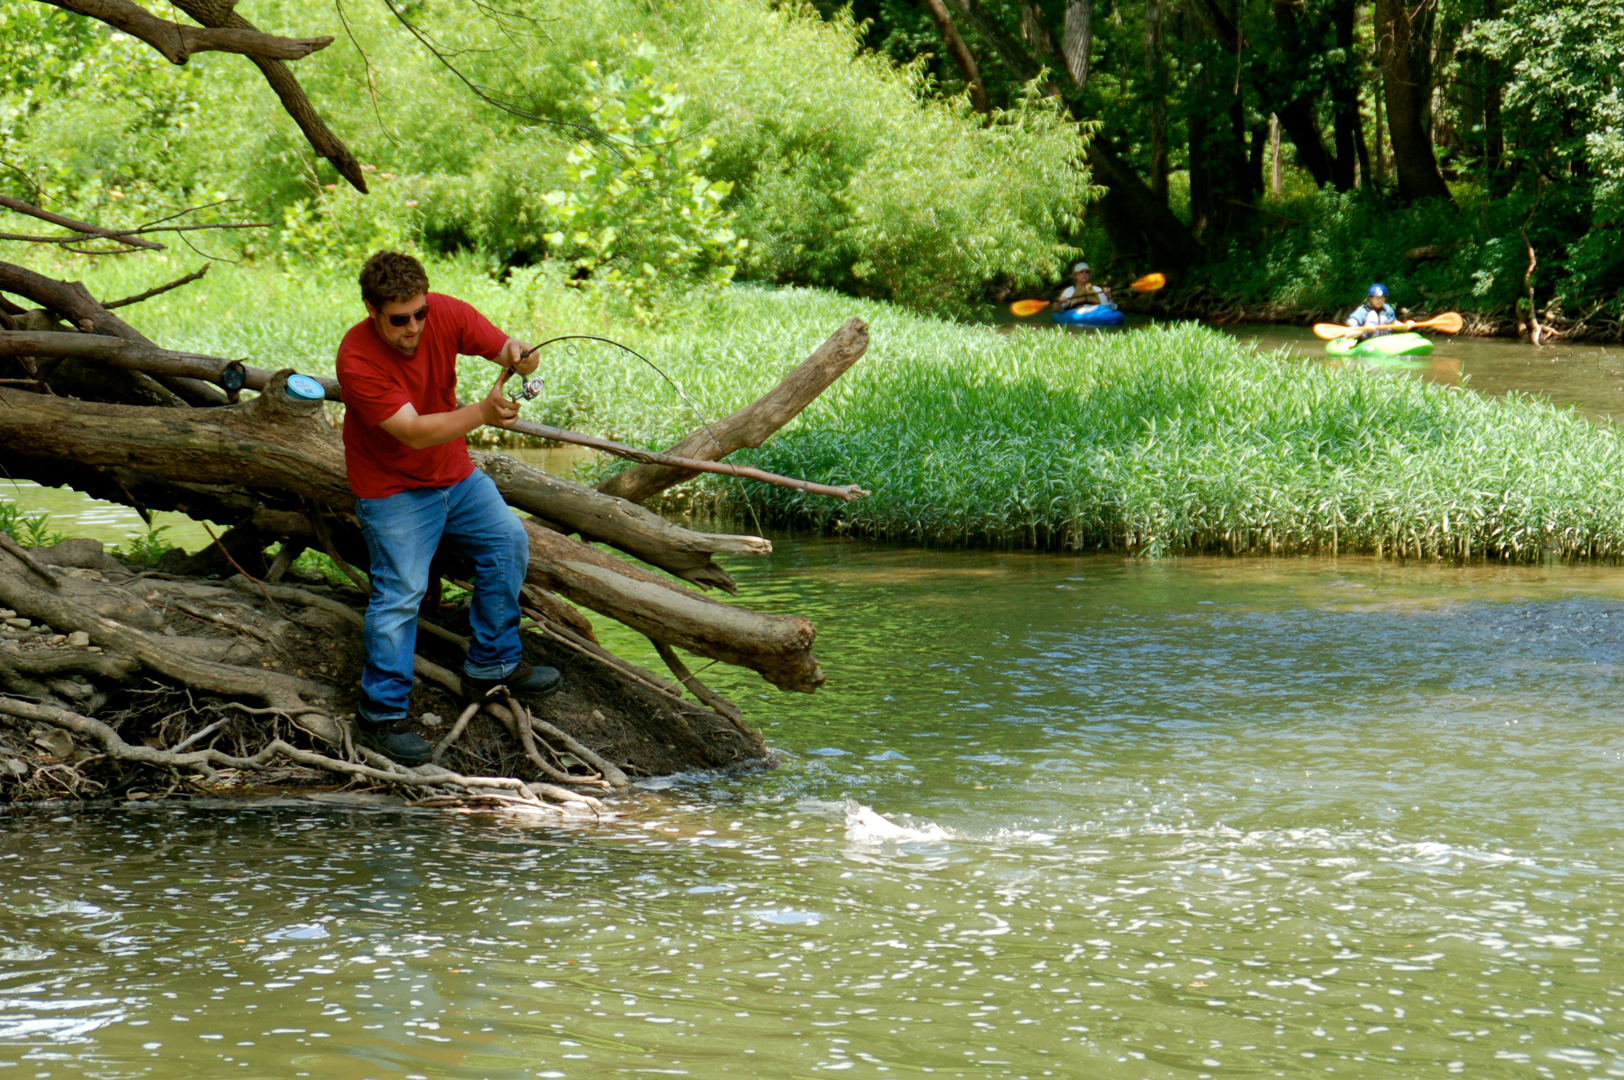 Man catches a fish from banks of Big Darby Creek in Battelle Darby Creek Metro Park